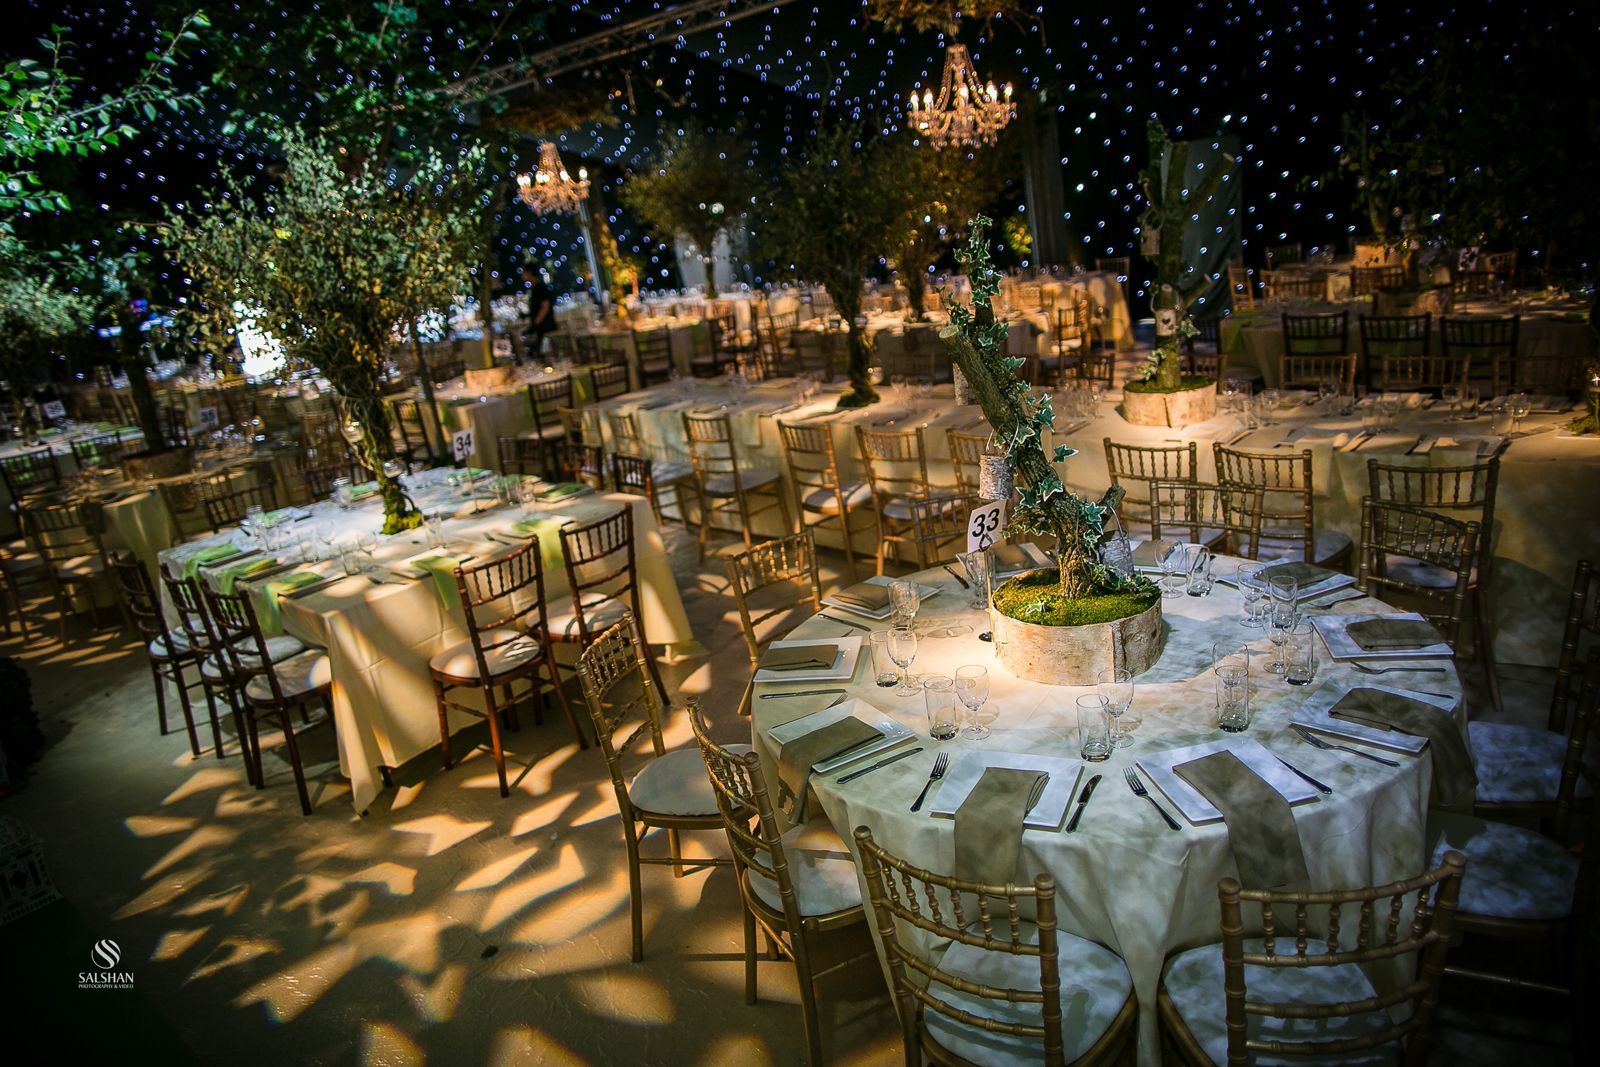 Captivating forest themed indoor wedding ideas 14 aspen fw captivating forest themed indoor wedding ideas 14 junglespirit Gallery